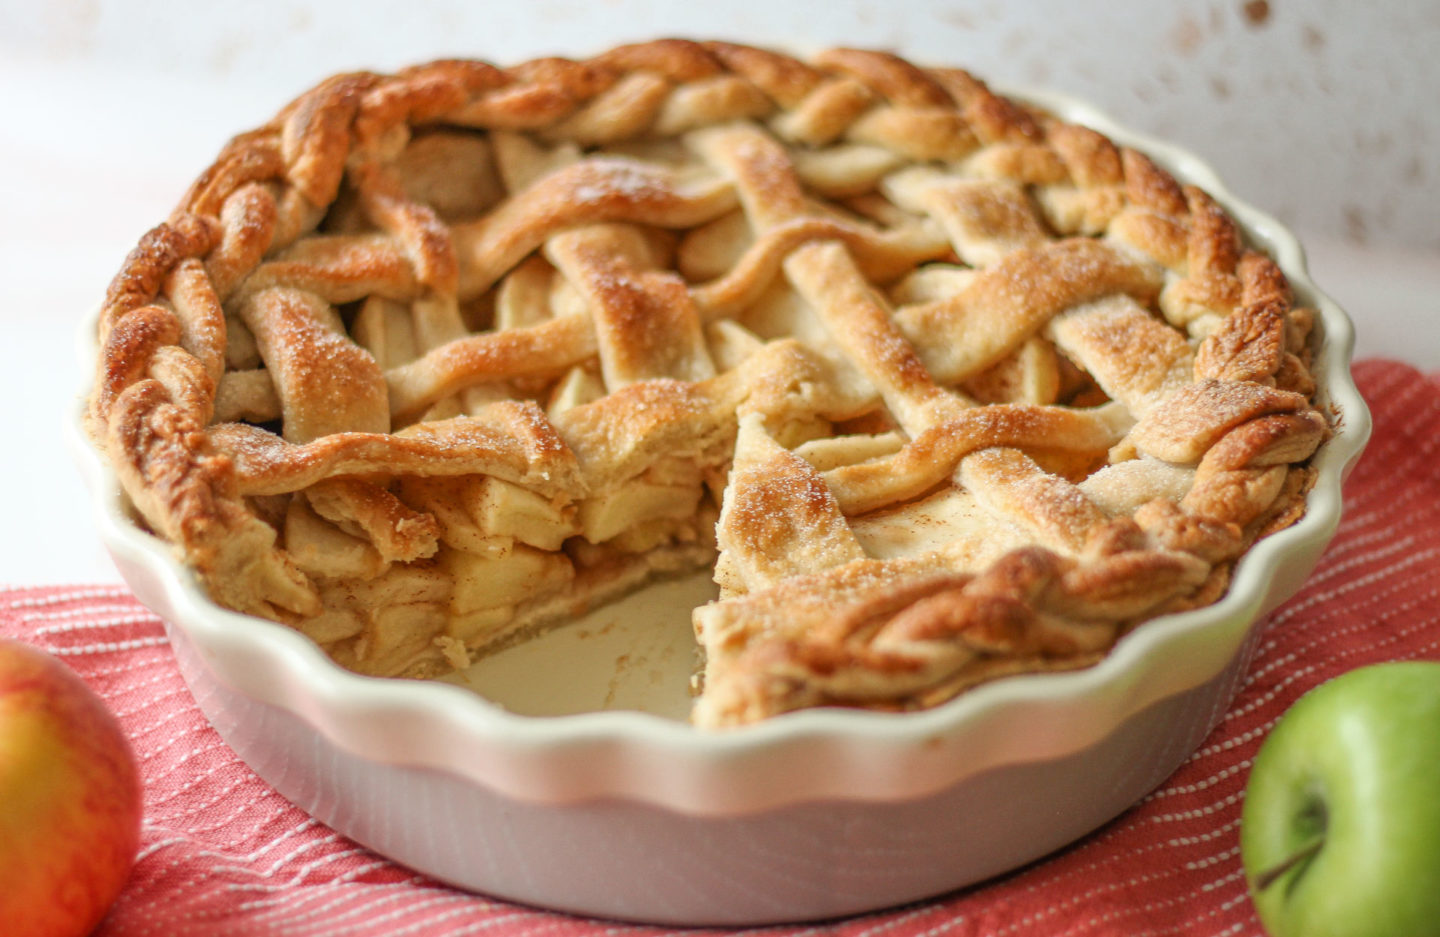 whole lattice apple pie with slice taken from it, showing the filling inside